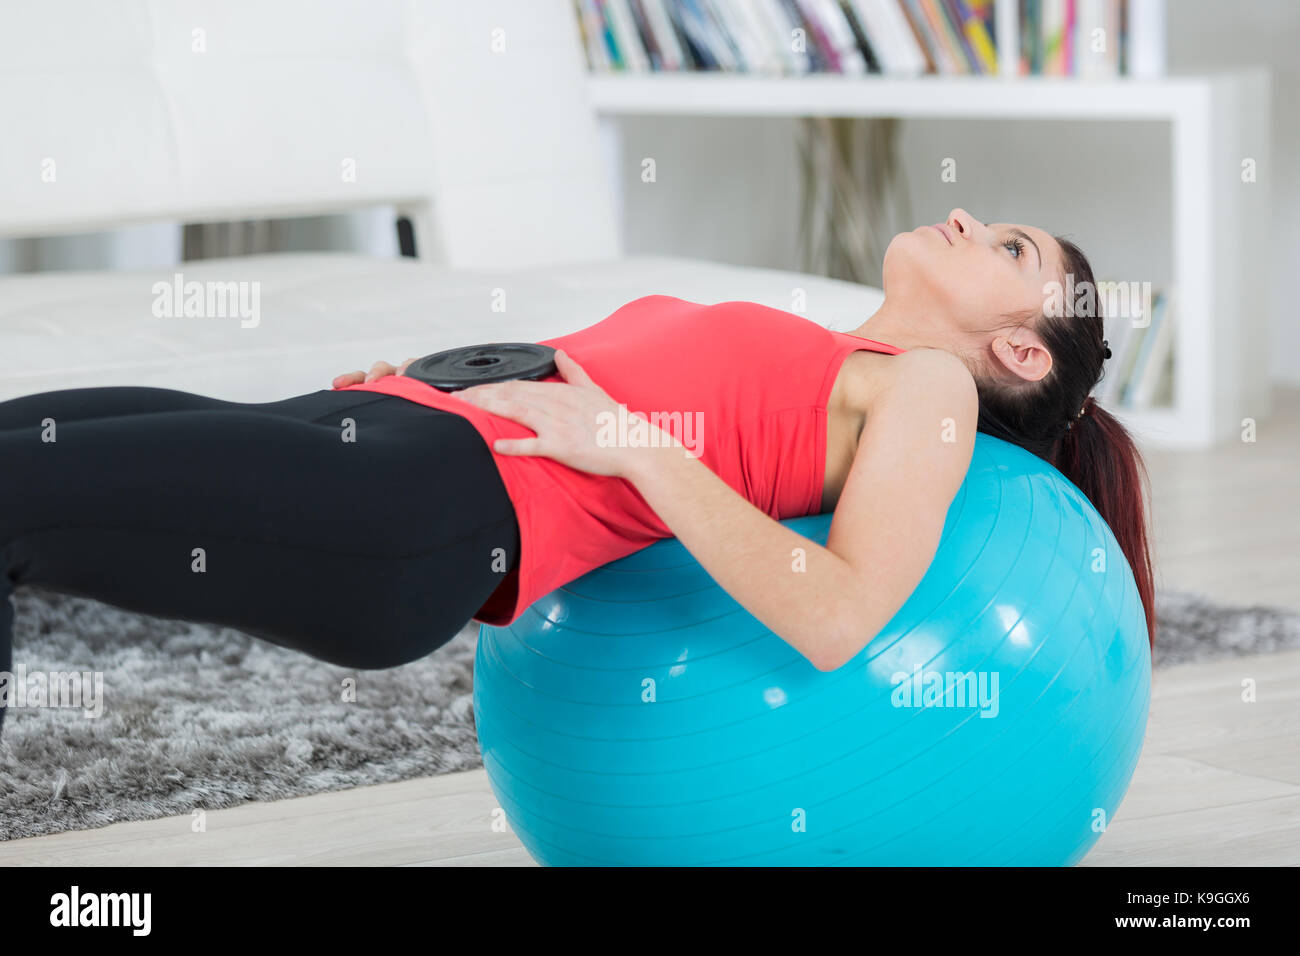 Fitness Girl Doing Crunches Lying On The Floor At Home Stock Photo